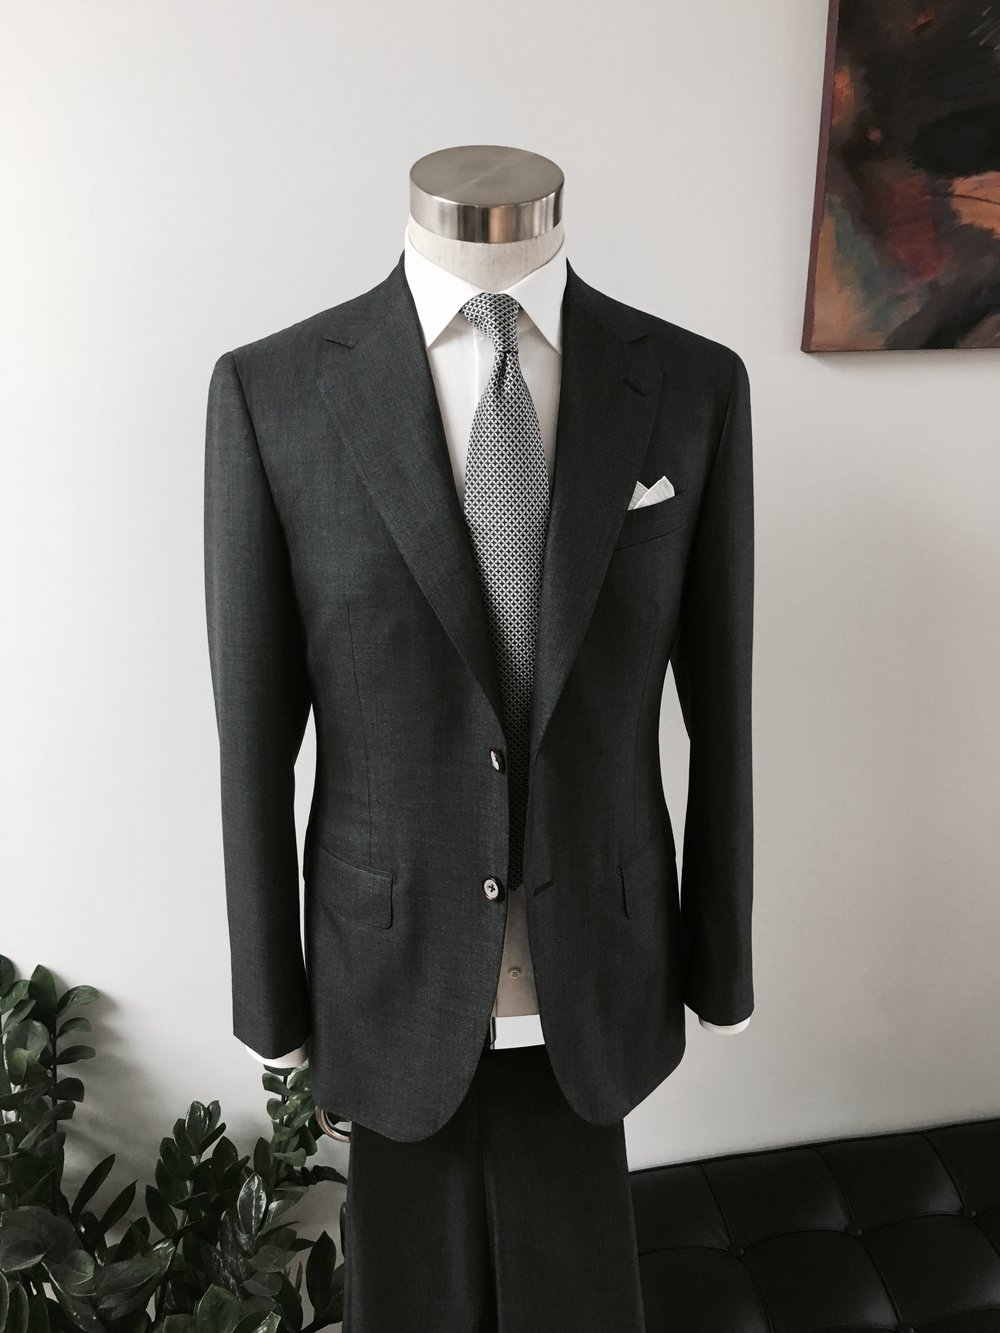 Bespoke Suiting in Wool Silk, 5,000 Handmade Stitches, 50 Man Hours. HK$18,000.    (Only Available in Bespoke & MTM)